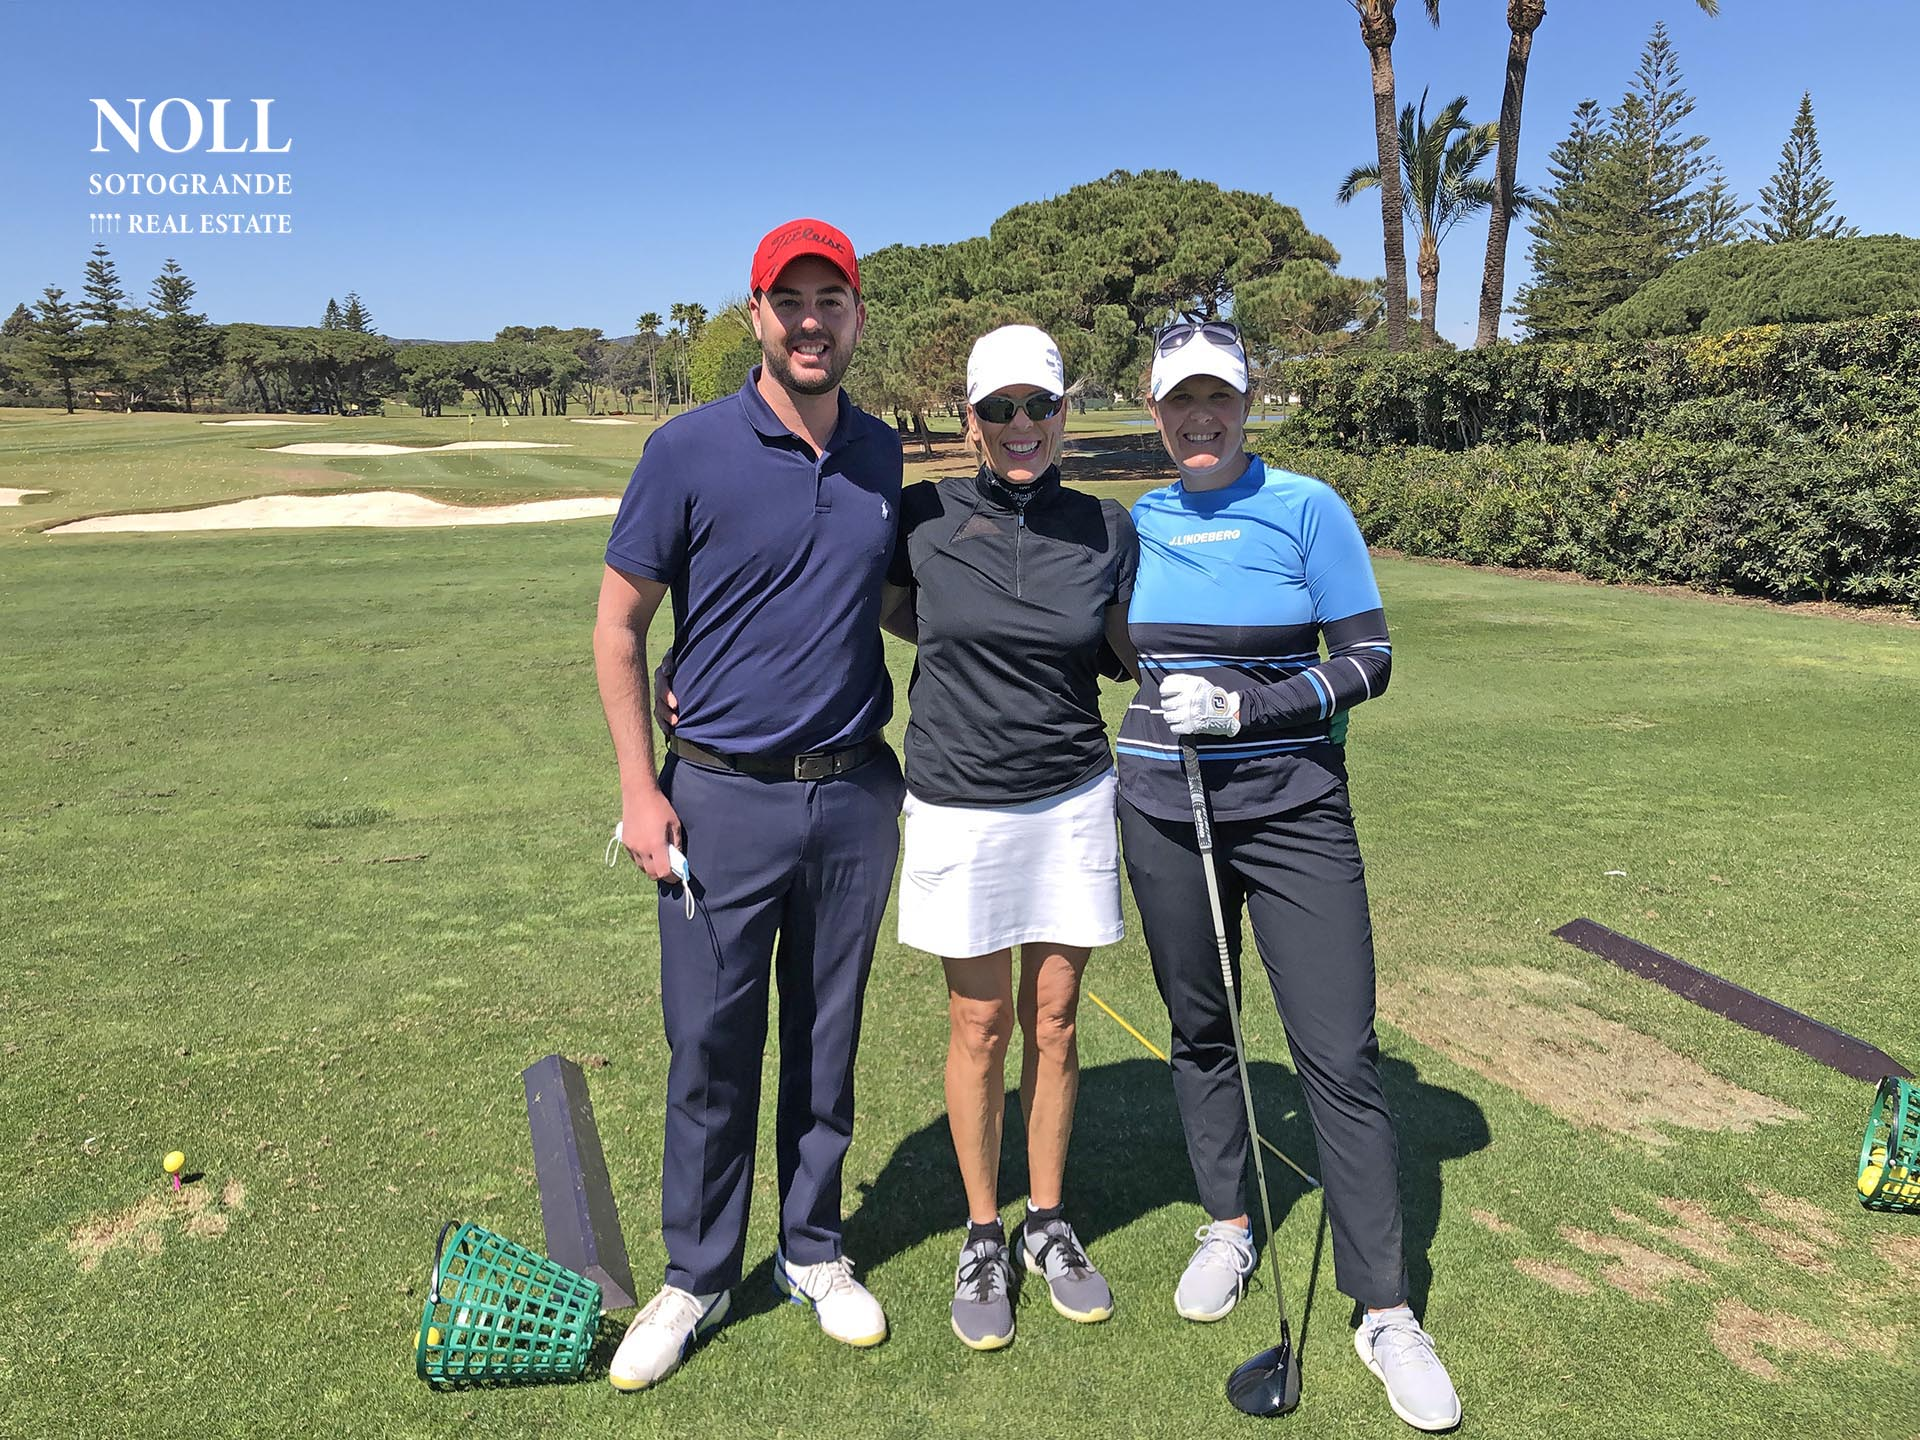 A Golf Day with Proette Marianne Skarpnord in Sotogrande by Stephanie Noll